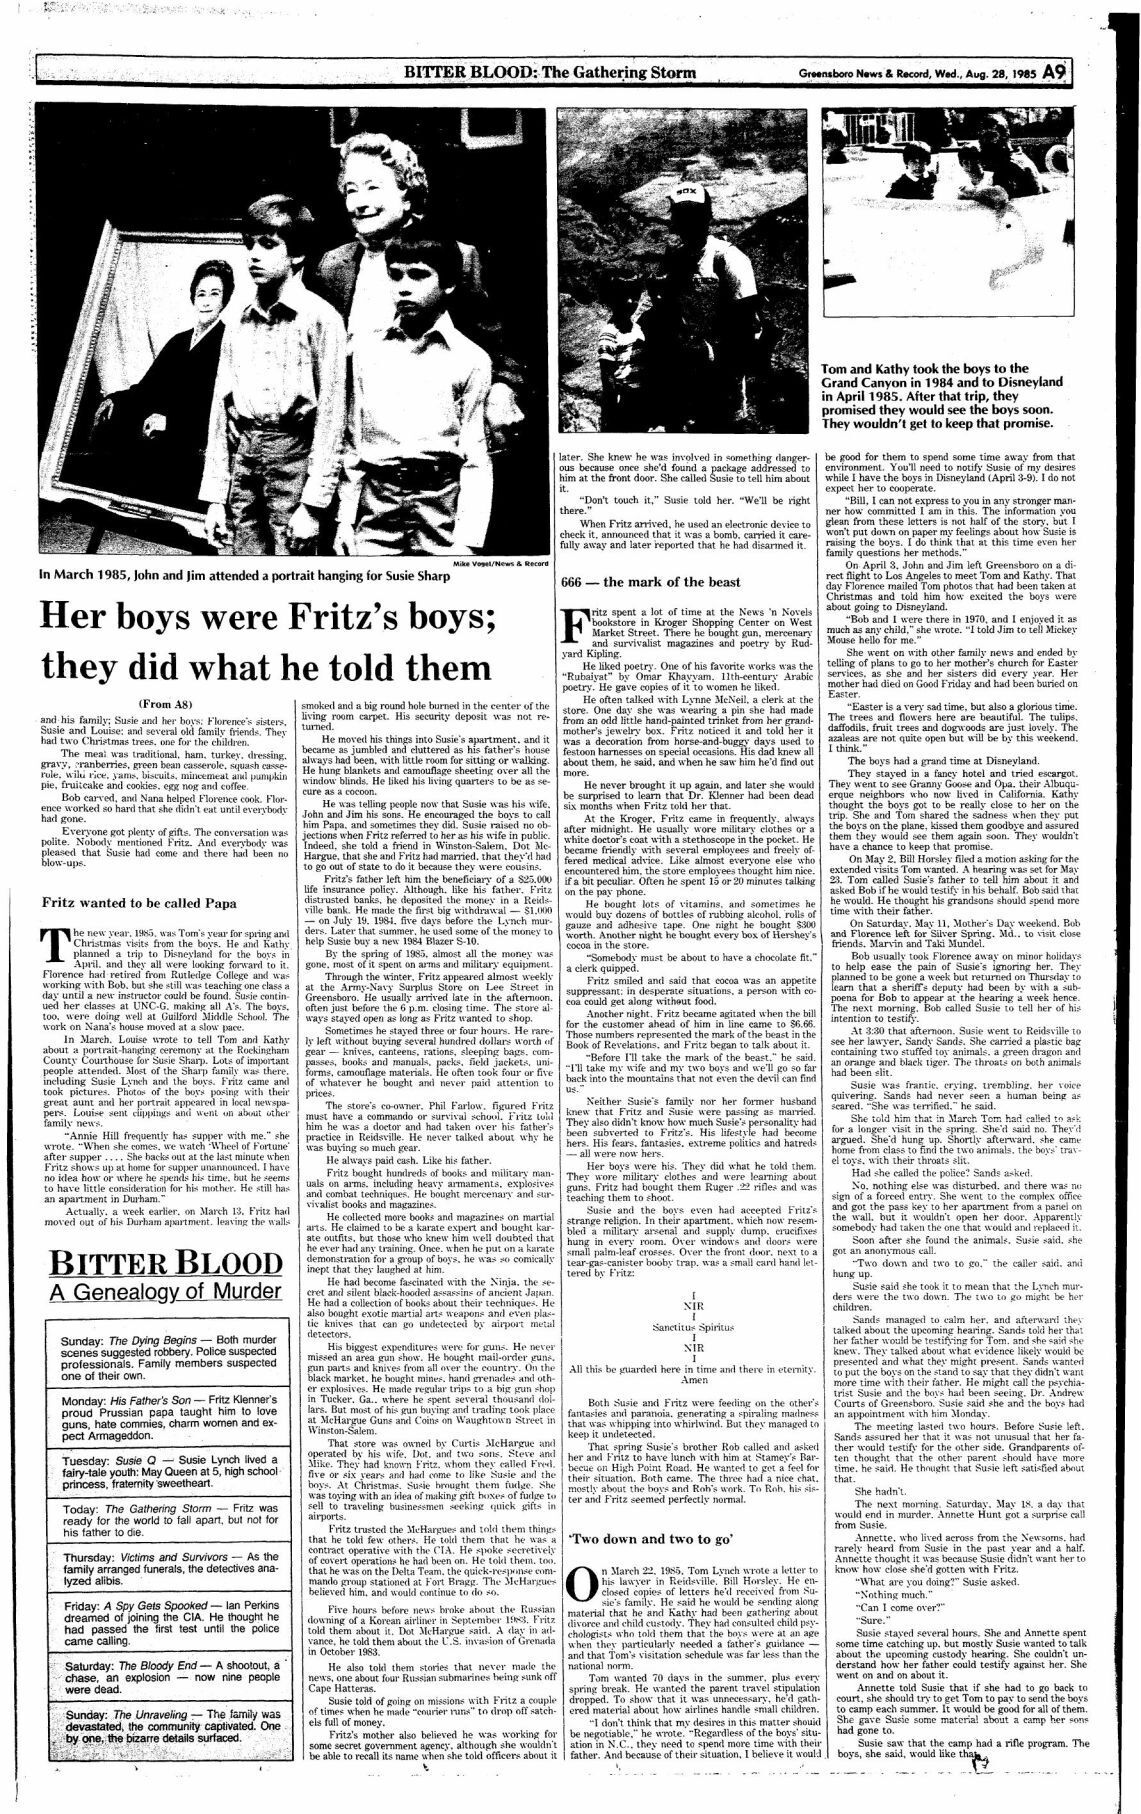 Bitter Blood: Her boys were Fritz's boys, they did what he told them